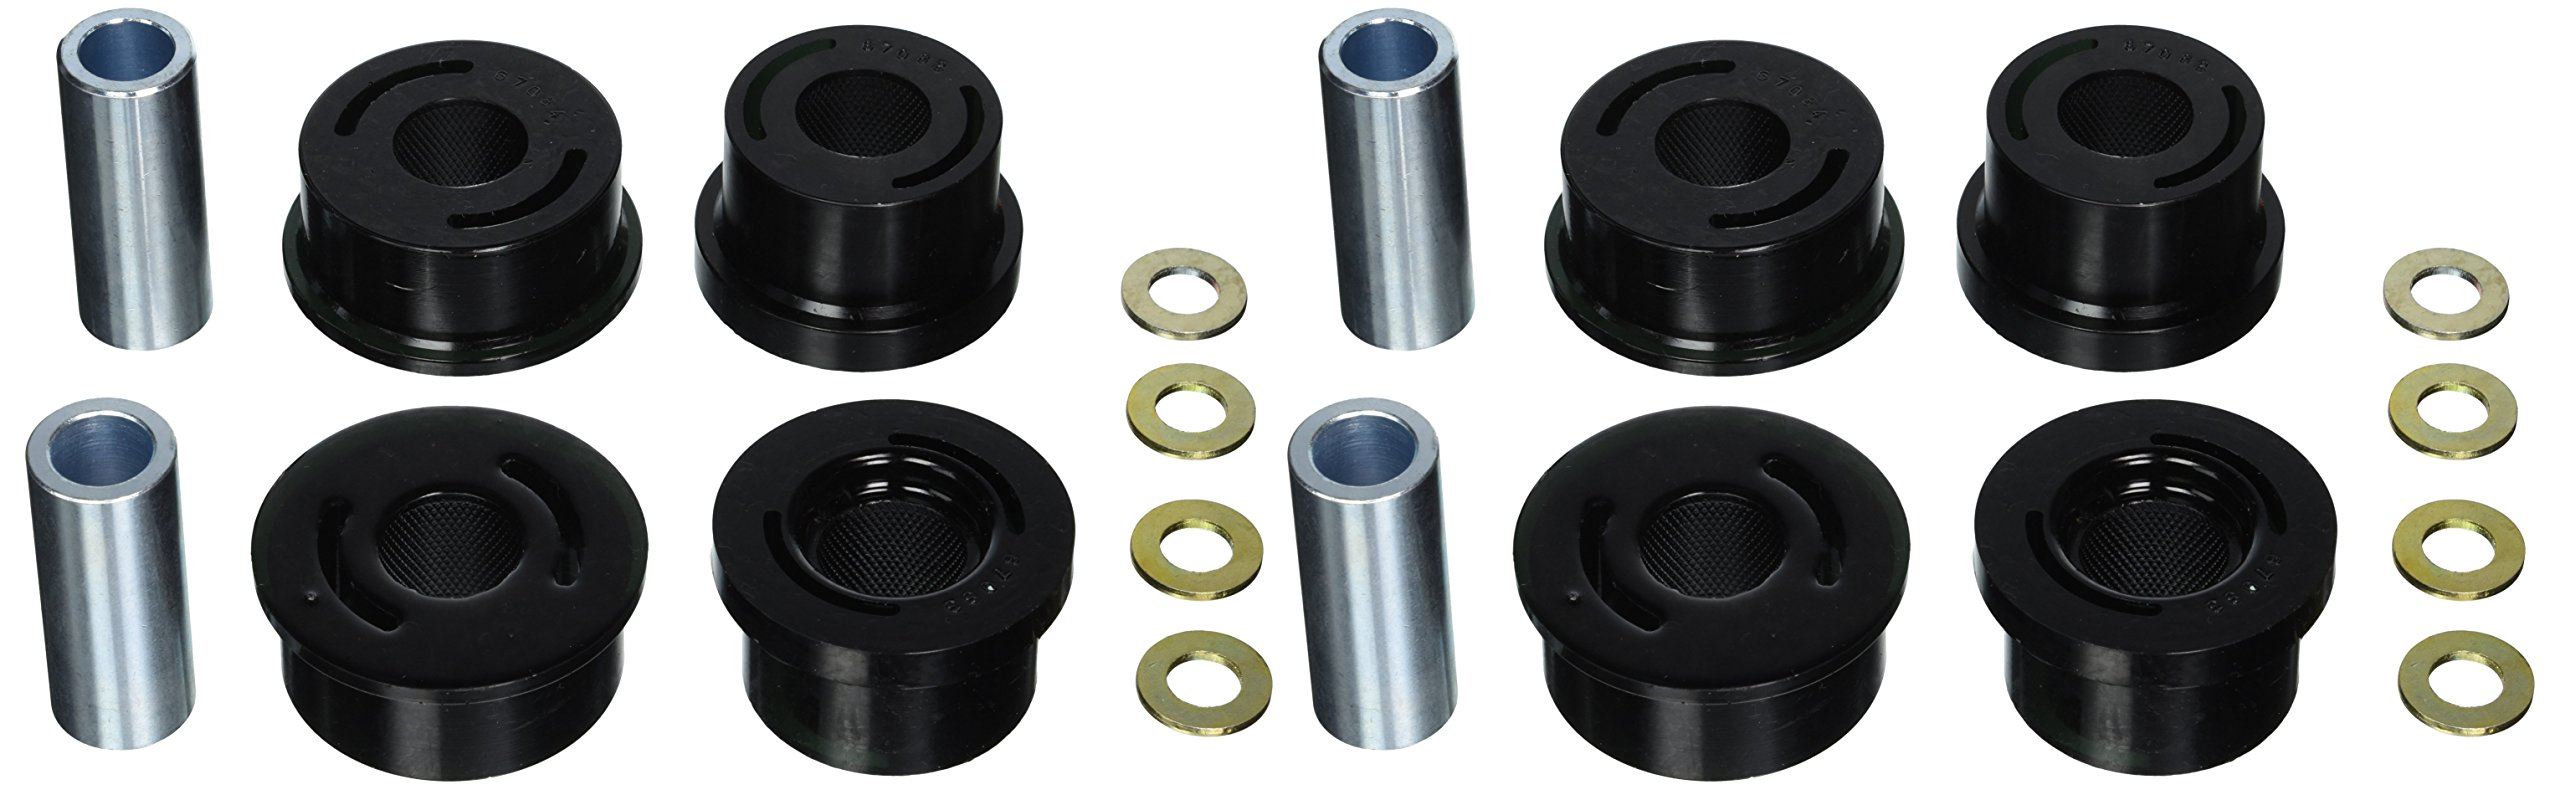 Whiteline W92994 Rear Subframe Mount Bushing